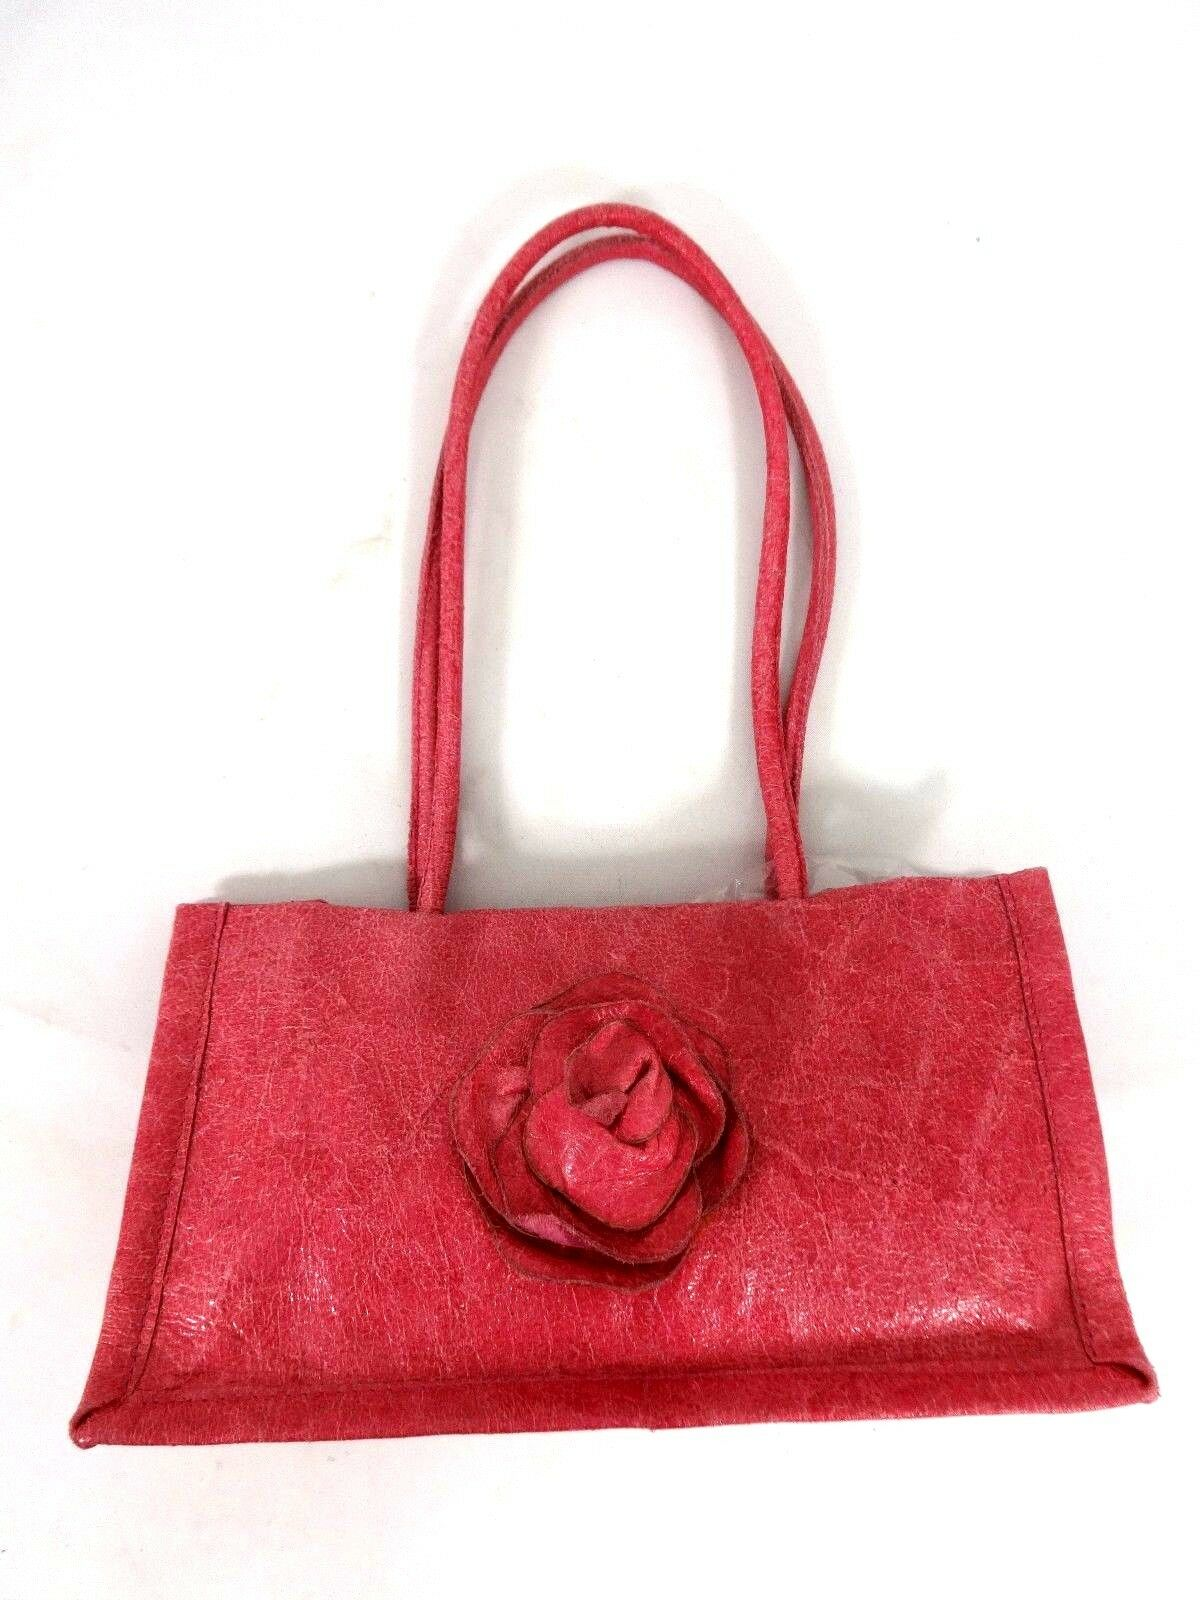 purchase cheap 5a45a e70d9 Details about ANTONELLO SERIO WOMENS SMALL SIZE PINK LEATHER HANDBAG PURSE  MADE IN ITALY